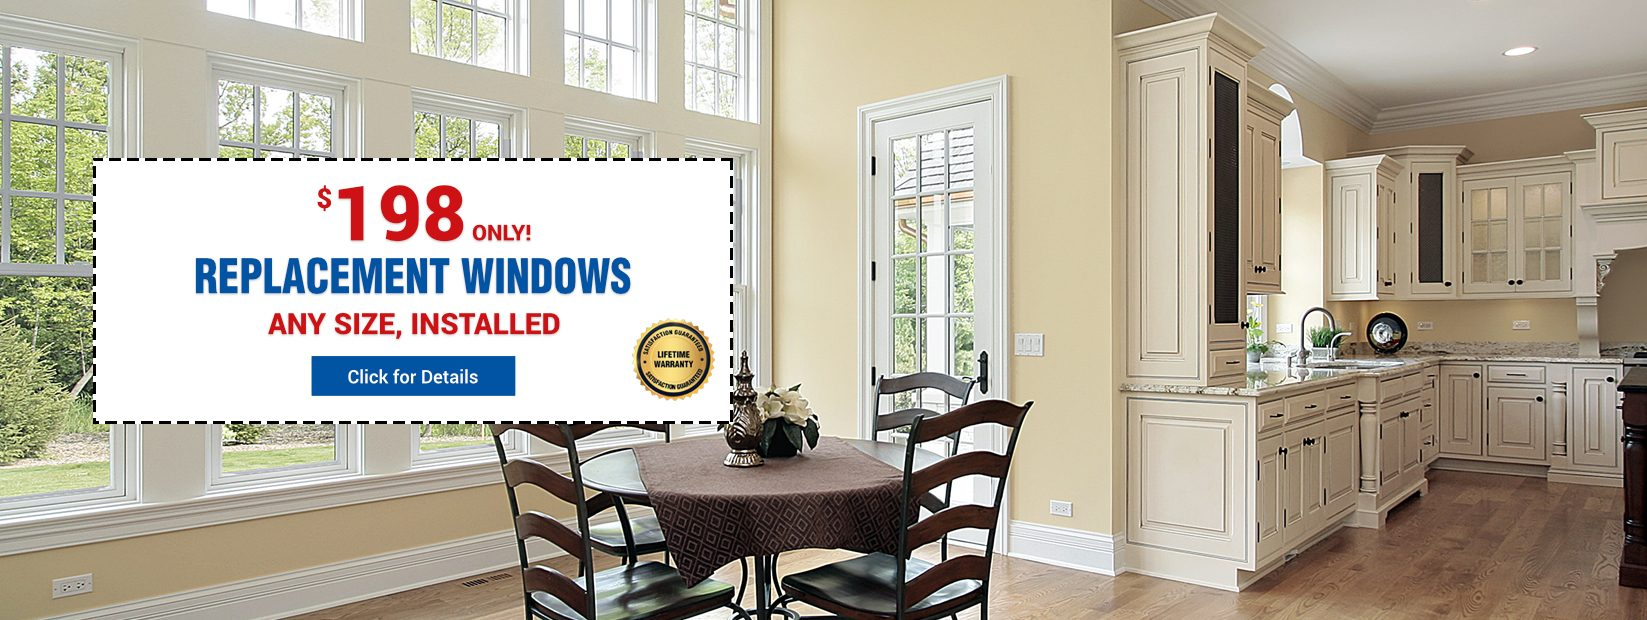 Replacement Windows Offer